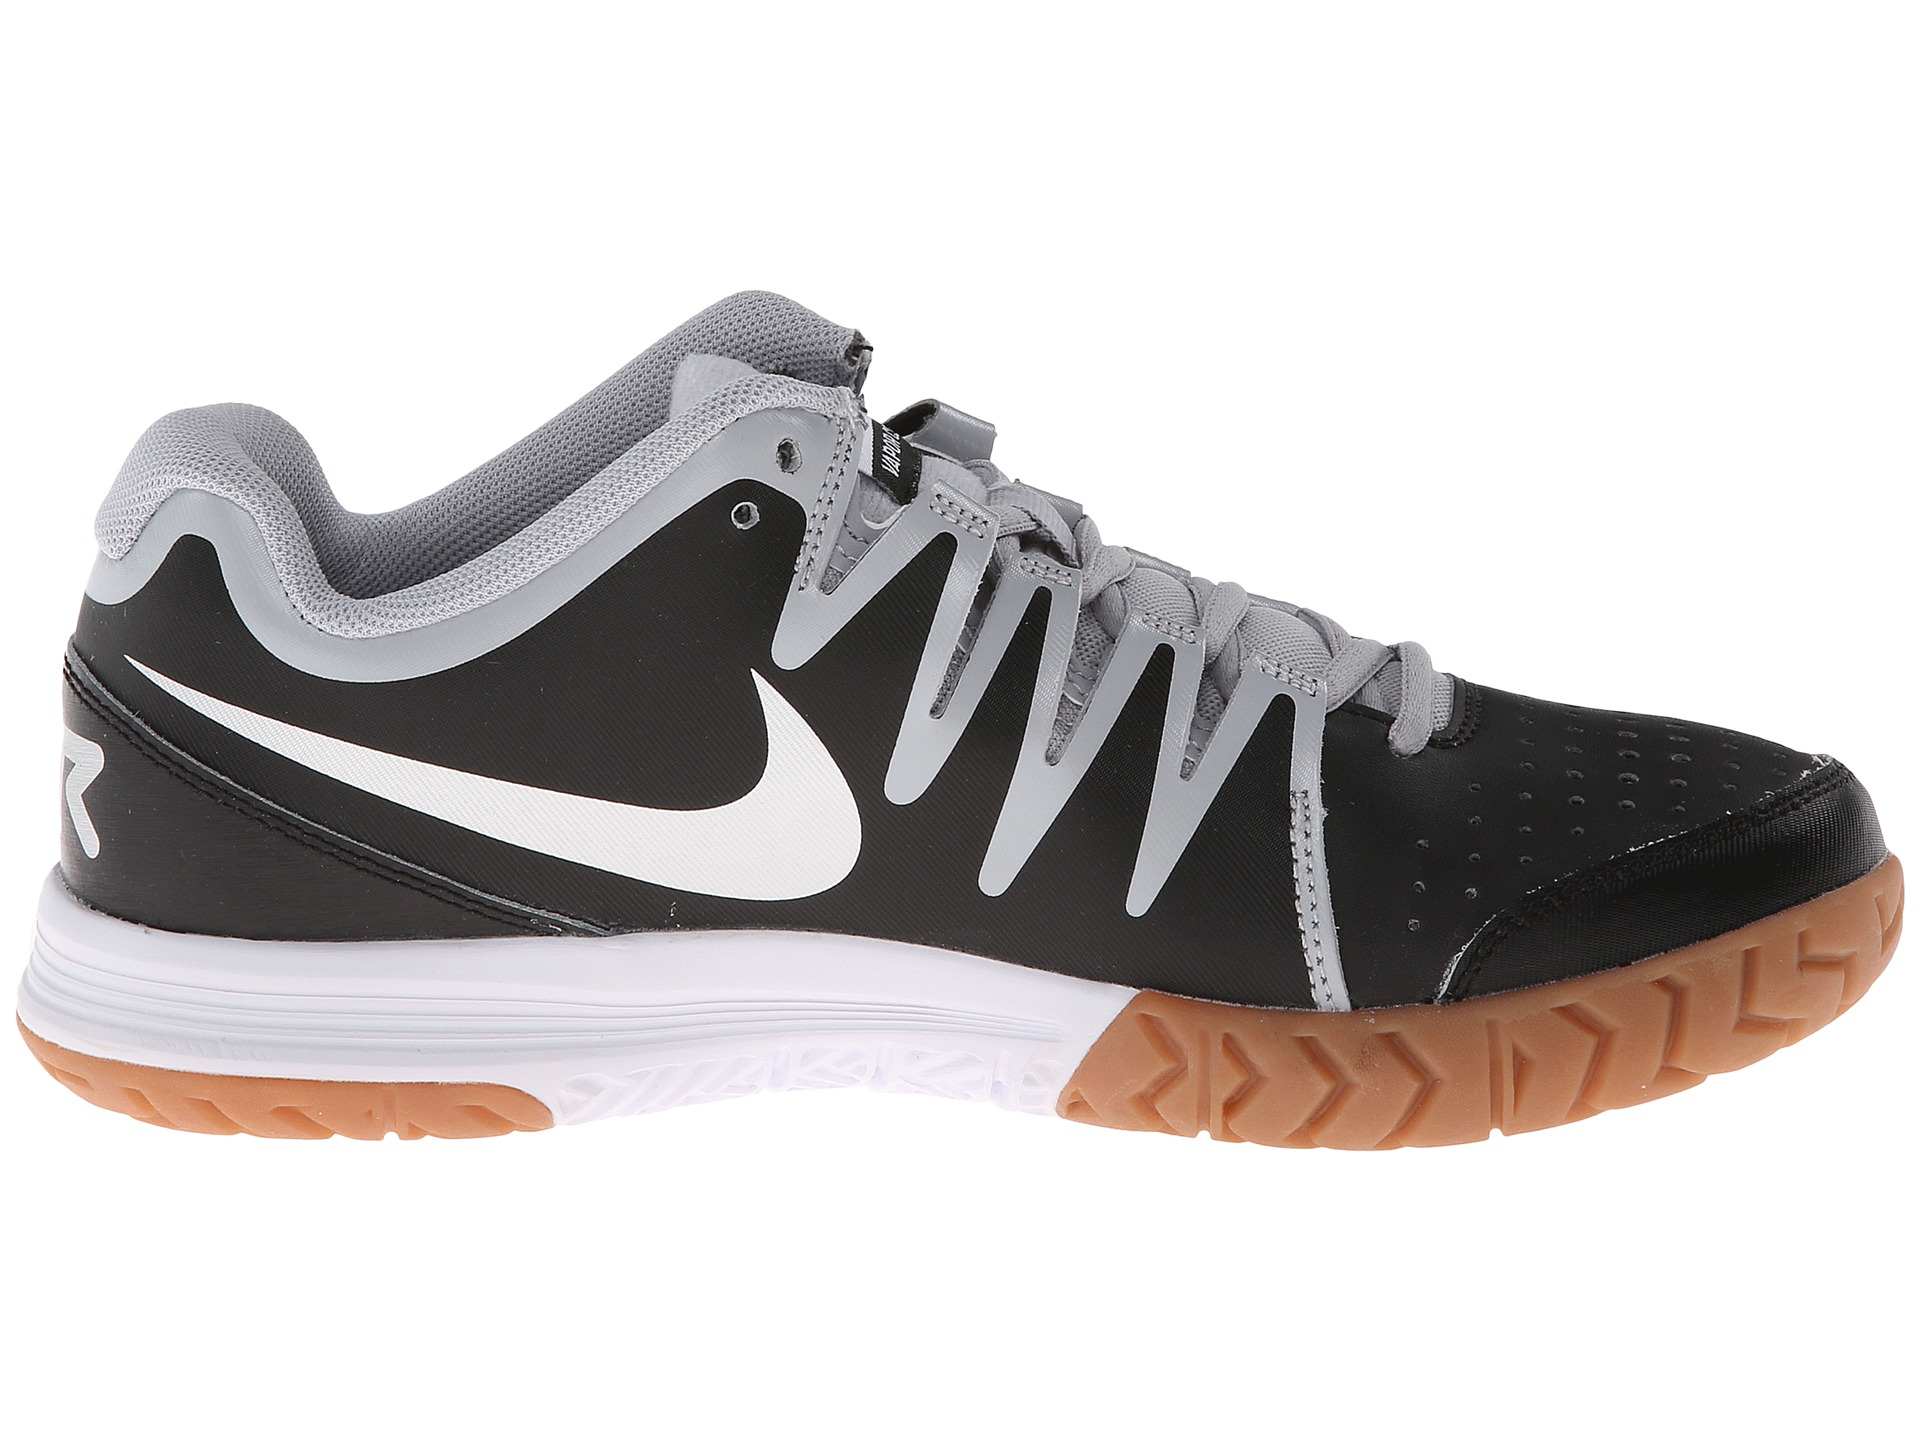 Nike Vapor Court Volleyball Shoes